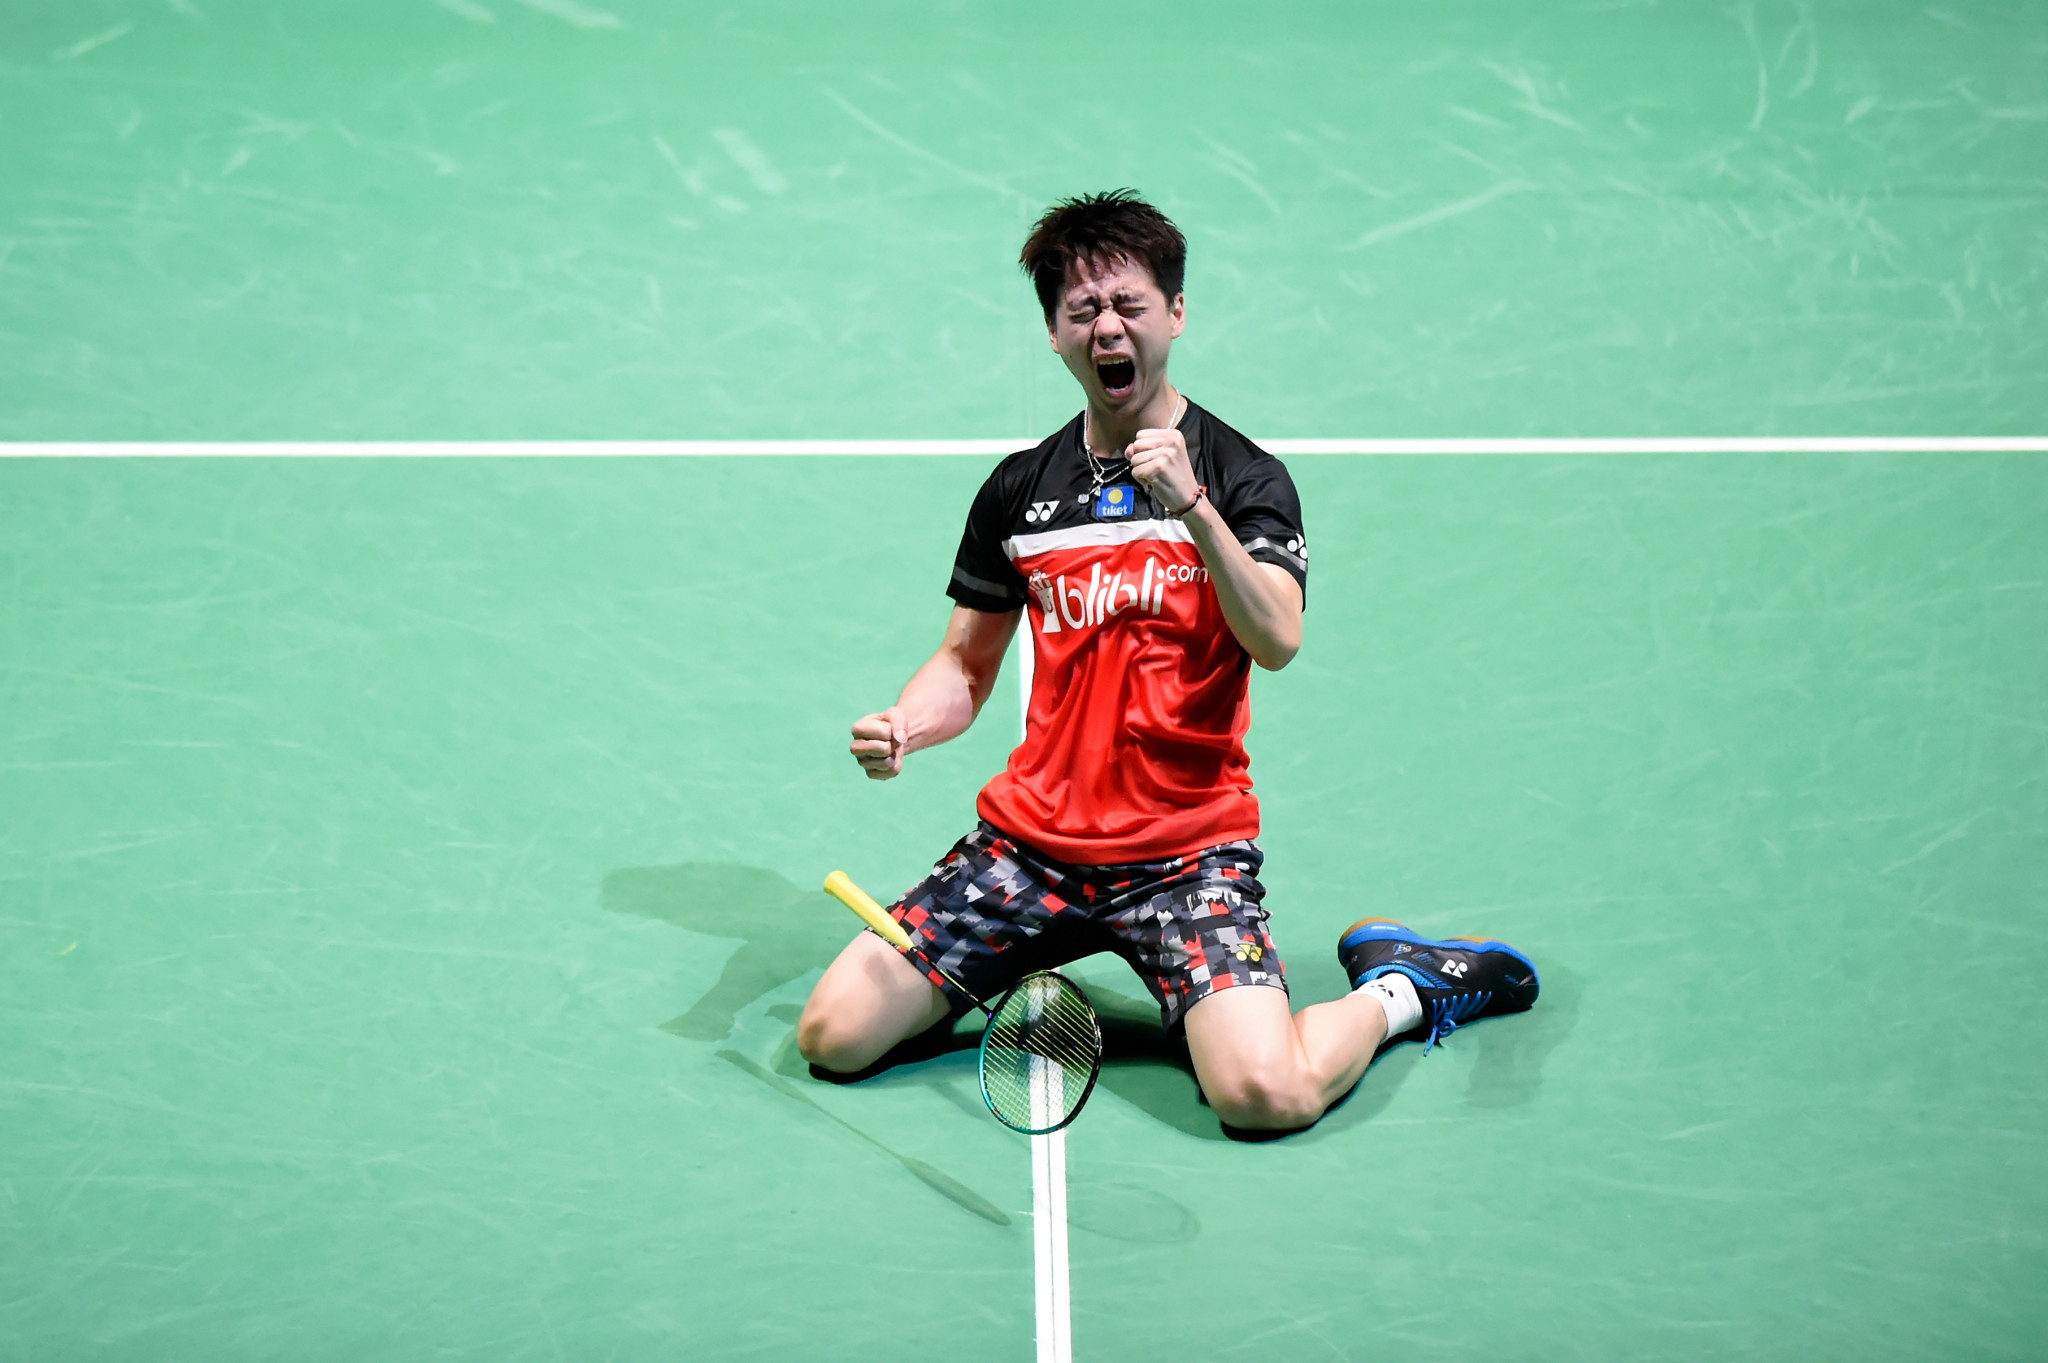 Kevin Sanjaya Sukamuljo said he hoped he could recover quickly after testing positive for COVID-19 three times ©Getty Images